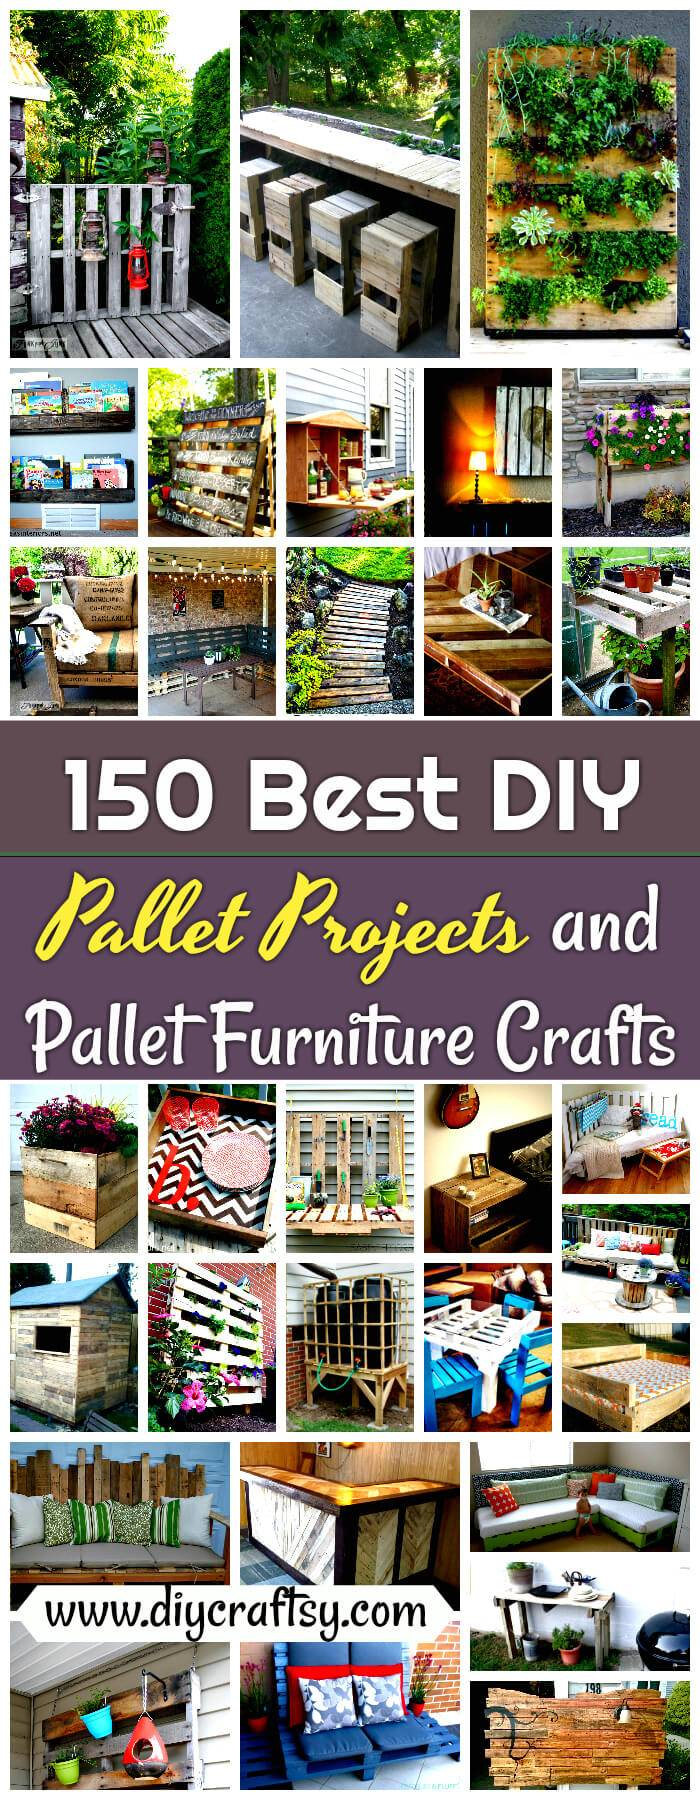 Pallet Projects and Pallet Furniture Crafts 150